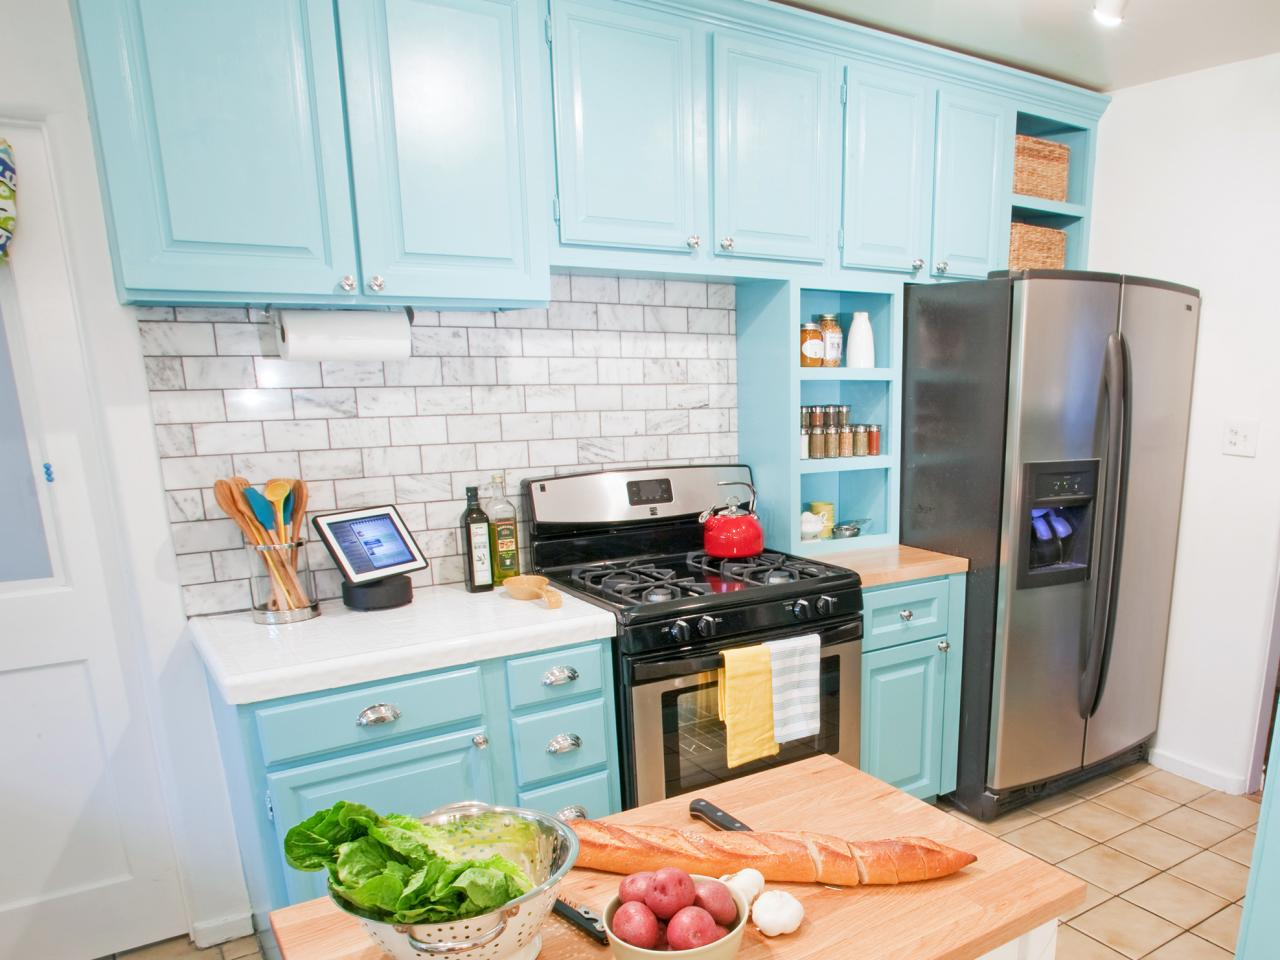 Repainting Kitchen Cabinets: Pictures, Options, Tips & Ideas | HGTV